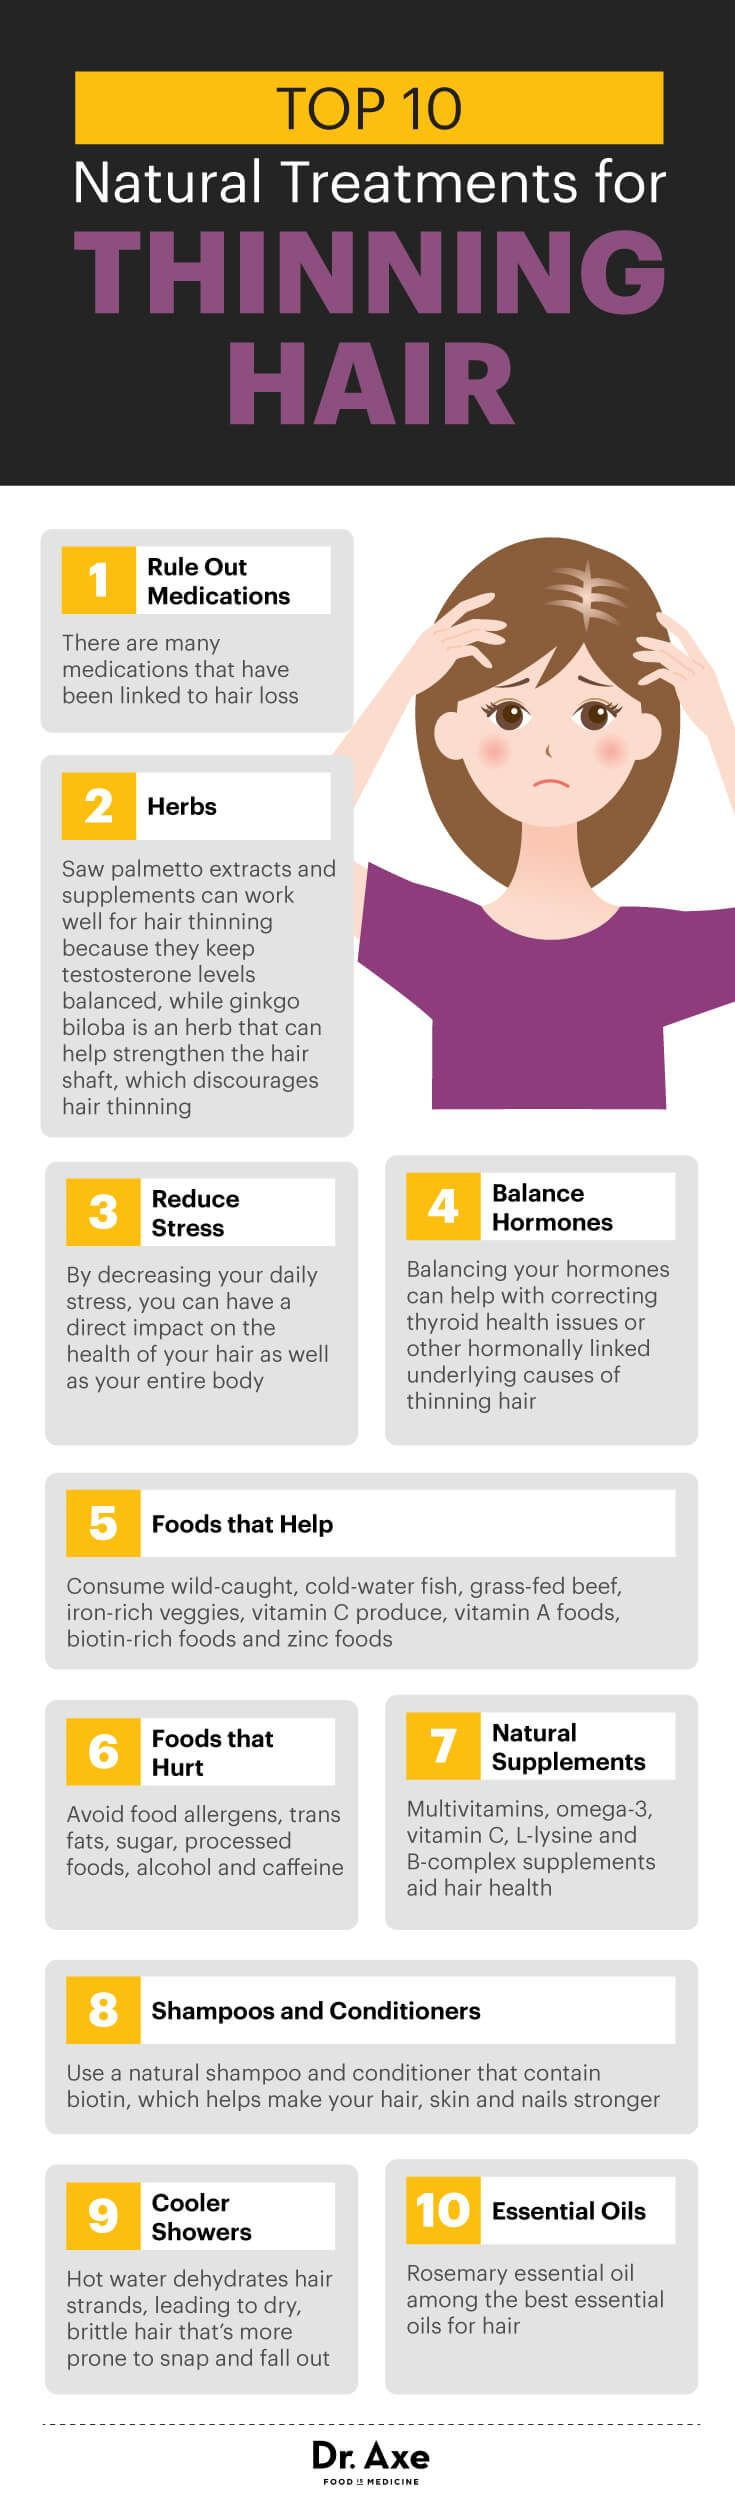 10 natural treatments for thinning hair - Dr. Axe